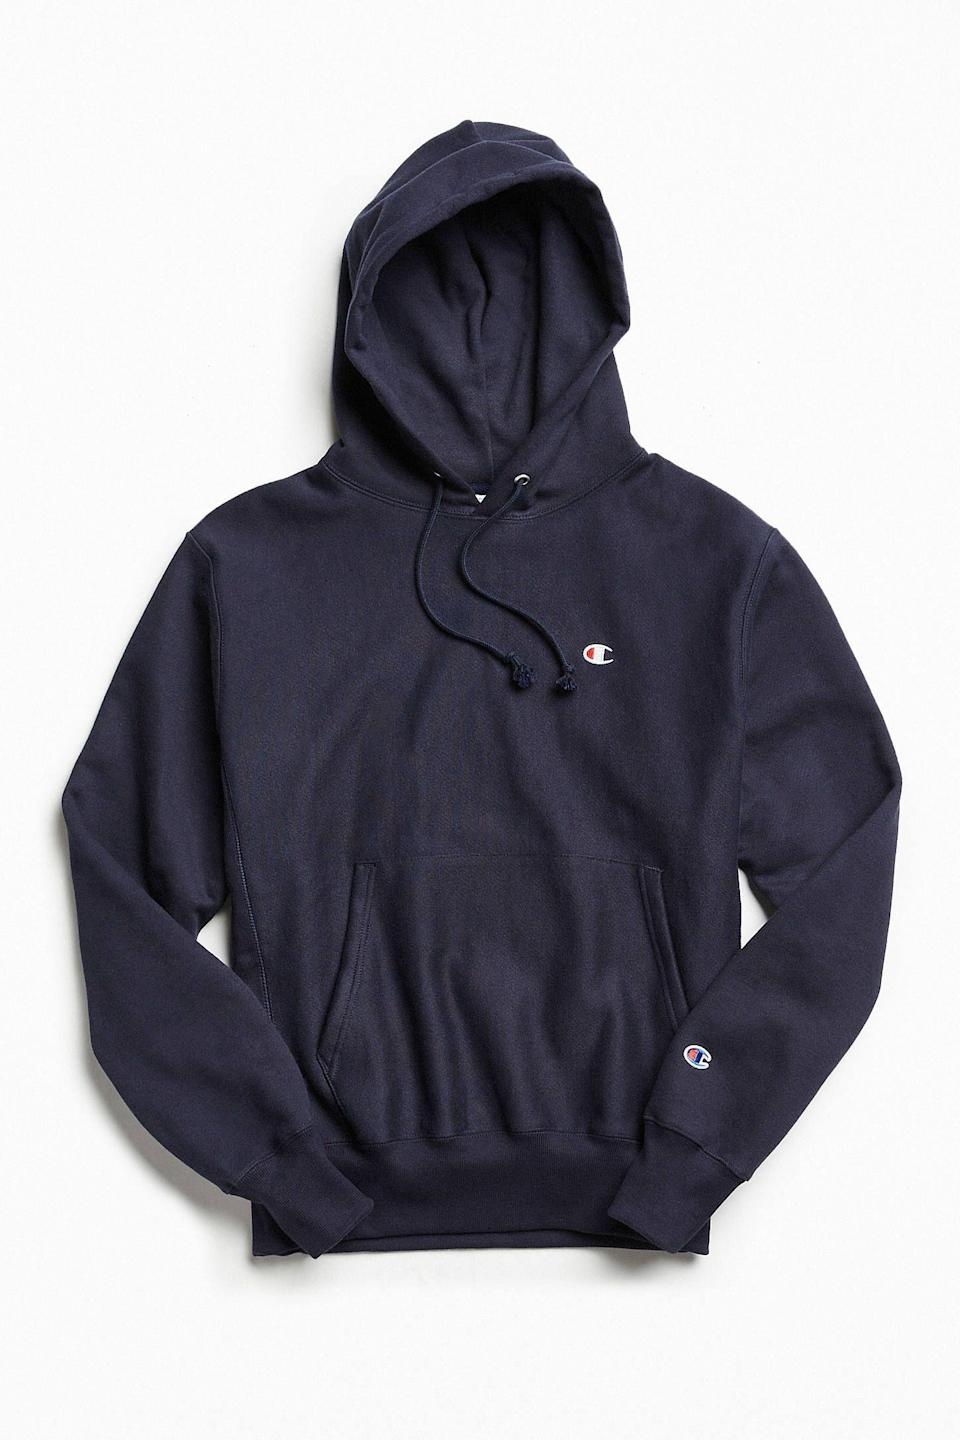 """<p><strong>Champion</strong></p><p>urbanoutfitters.com</p><p><strong>$60.00</strong></p><p><a href=""""https://go.redirectingat.com?id=74968X1596630&url=https%3A%2F%2Fwww.urbanoutfitters.com%2Fshop%2Fchampion-reverse-weave-hoodie-sweatshirt-001&sref=https%3A%2F%2Fwww.esquire.com%2Fstyle%2Fmens-fashion%2Fg3357%2Fbest-hoodies-men%2F"""" rel=""""nofollow noopener"""" target=""""_blank"""" data-ylk=""""slk:Buy"""" class=""""link rapid-noclick-resp"""">Buy</a></p><p>A true OG. Hey, if it ain't broke...</p>"""